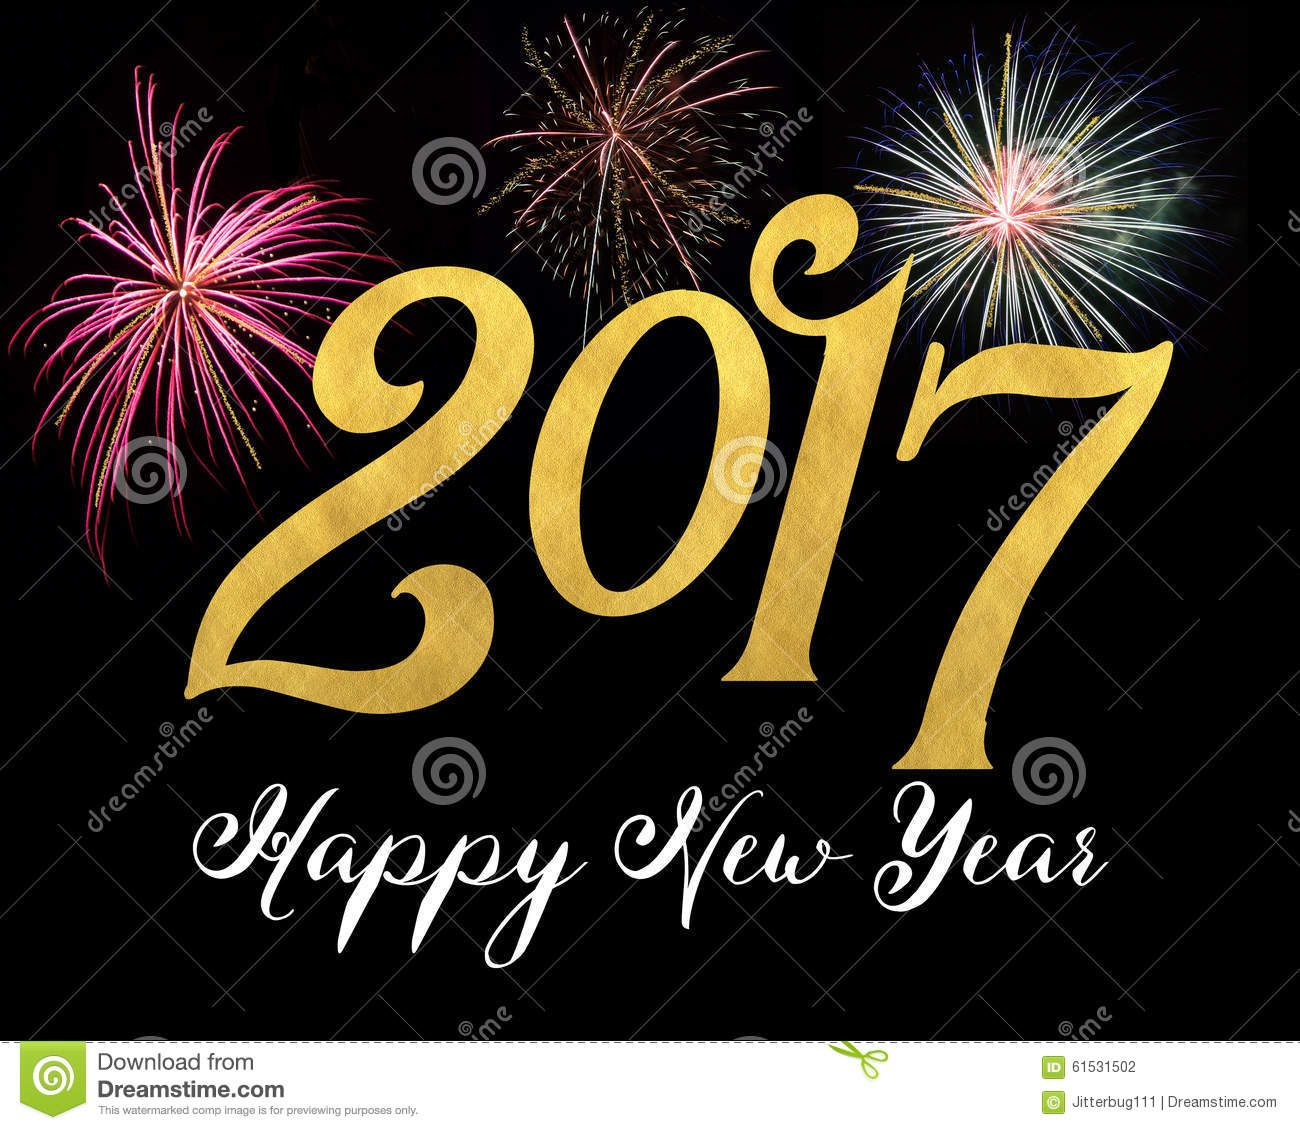 happy new year 2017 wishes happy new year images happy new year 2017 wallpapers